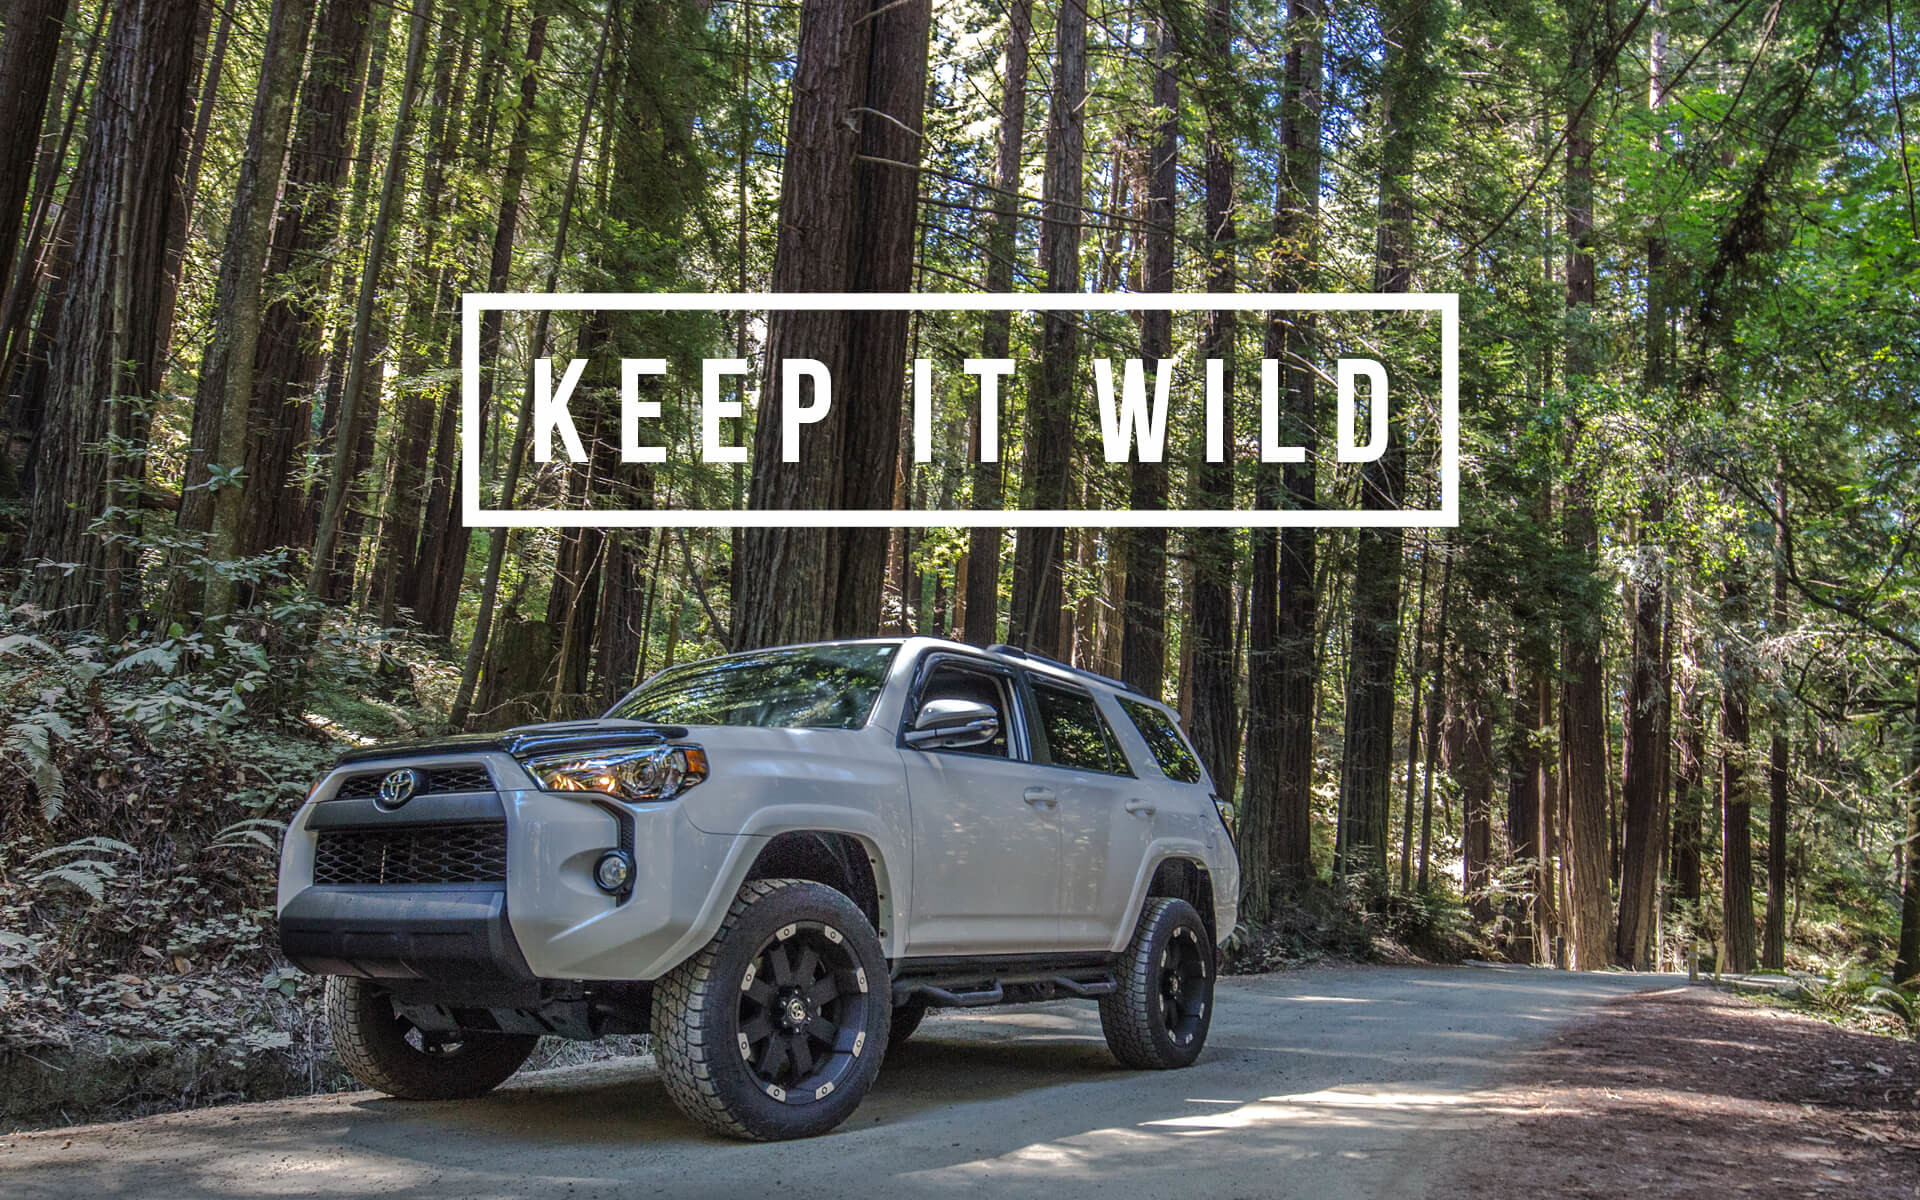 Res: 1920x1200, TRD PRO Wallpaper Background - Keep It Wild